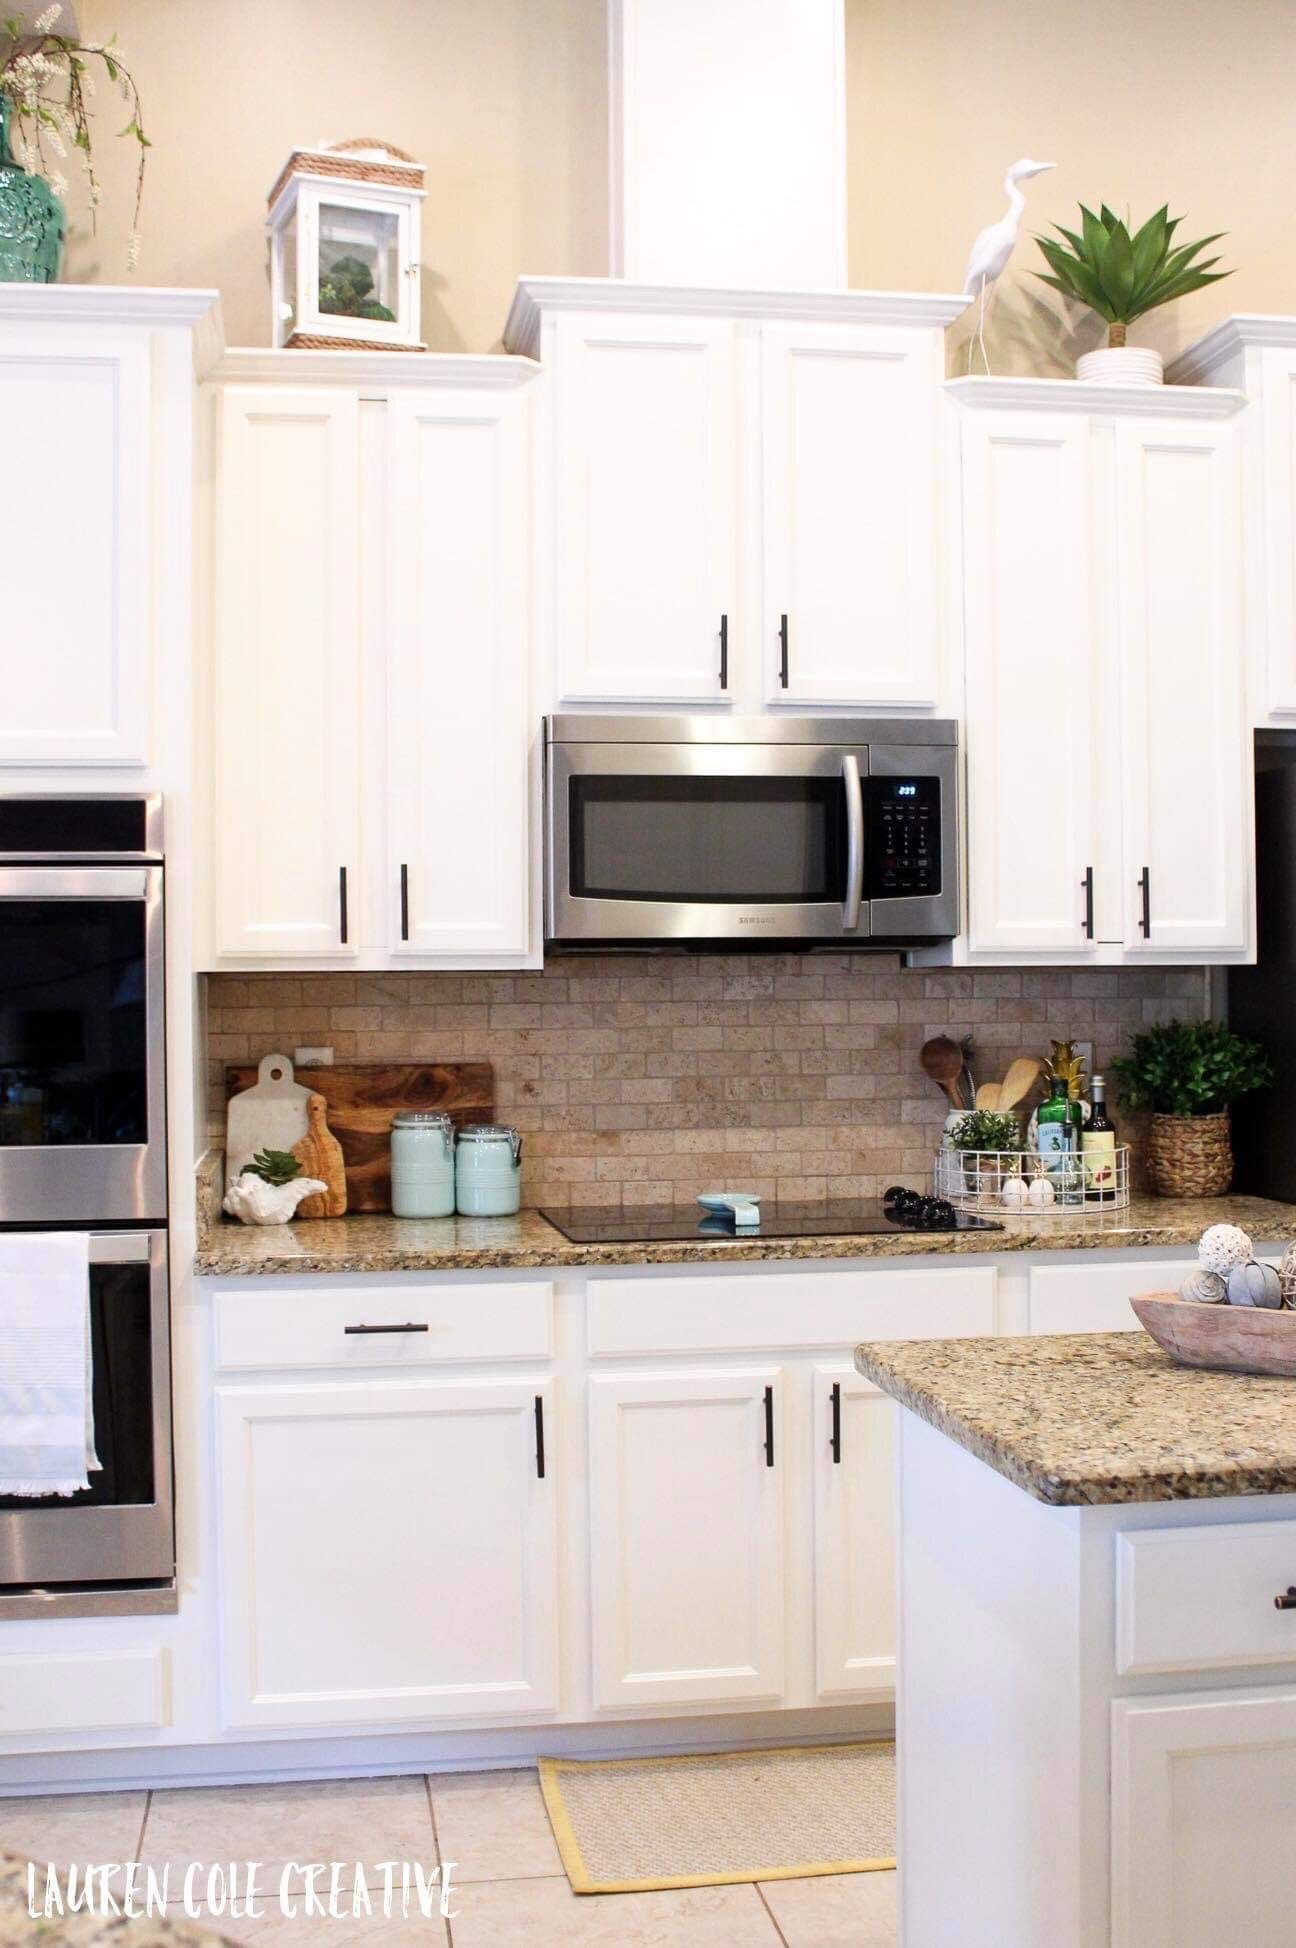 Coastal Kitchen Cabinets #swisscoffeebenjaminmoore Painted Cabinets in OC-45 Swiss Coffee Benjamin Moore.  All the perfect prep work and this gorgeous neutral white without too much undertone makes this kitchen a coastal dream. #swisscoffeebenjaminmoore